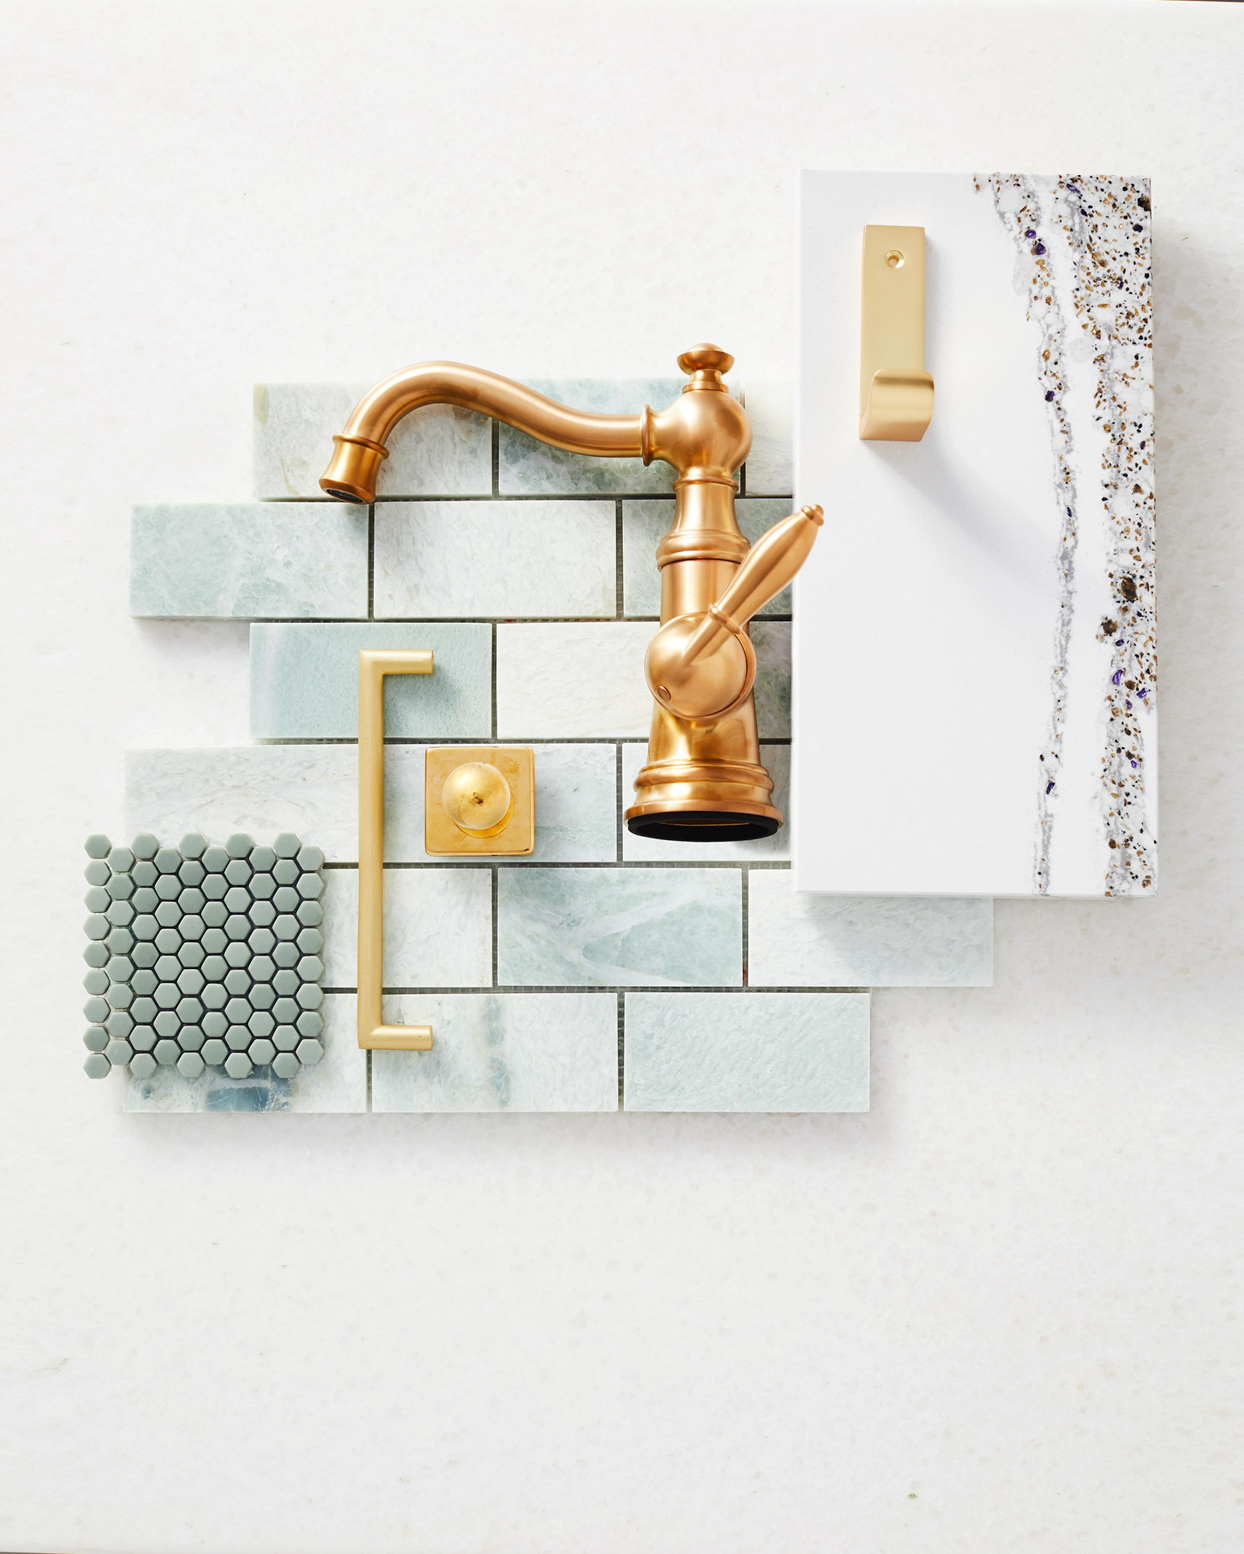 bathroom fixture details in mint green, gold, and white